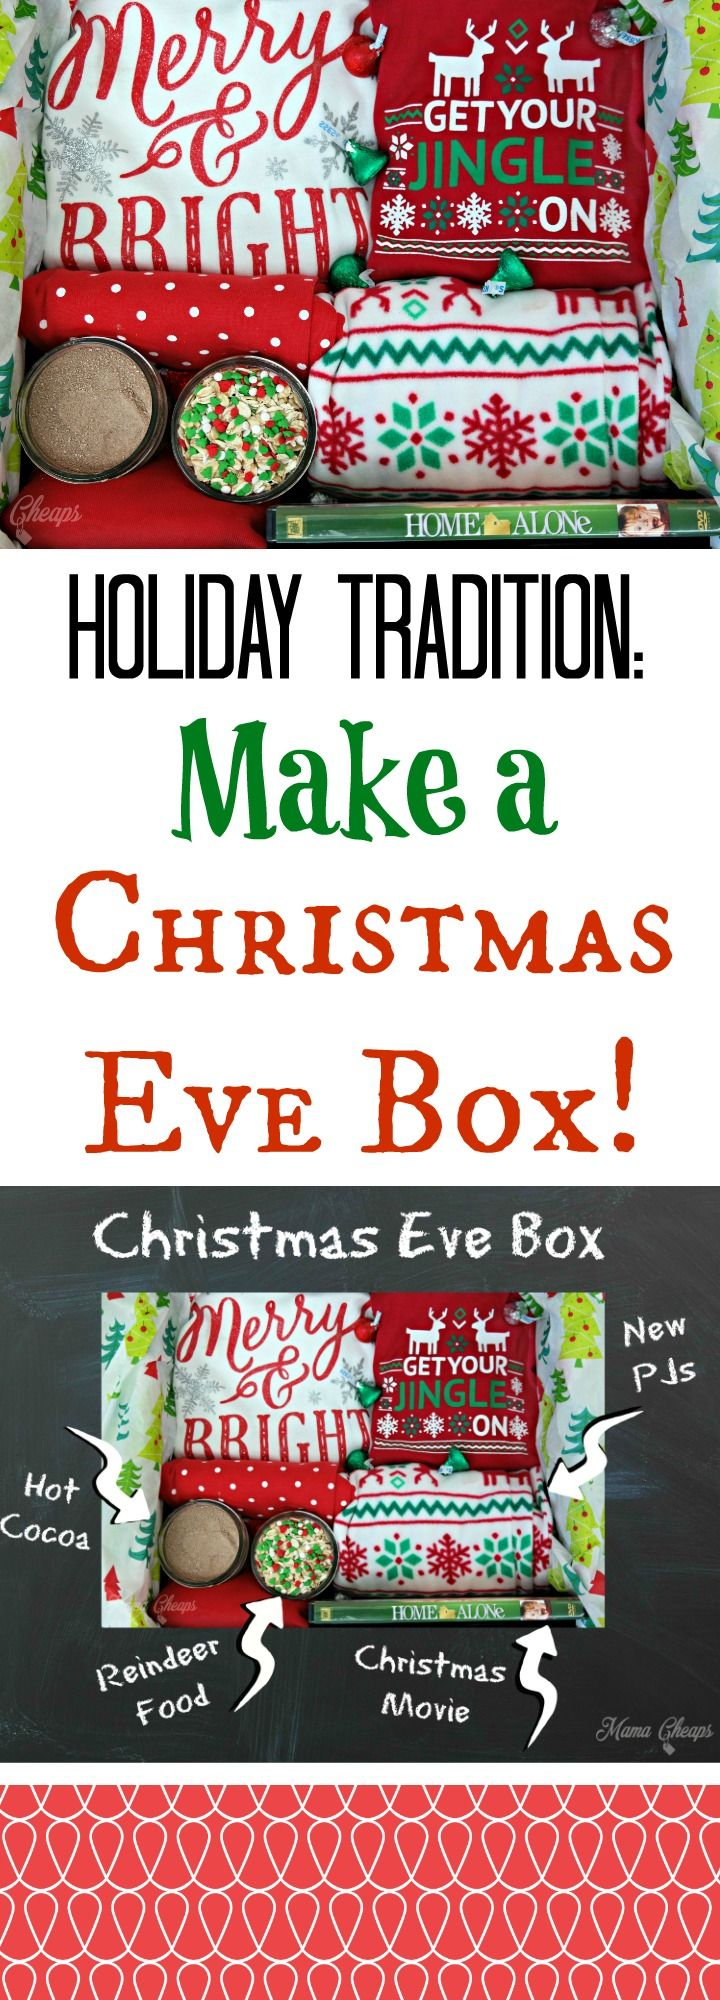 Start a new Holiday Tradition: Make a Christmas Eve Box! http://bit.ly/2g2G3JP